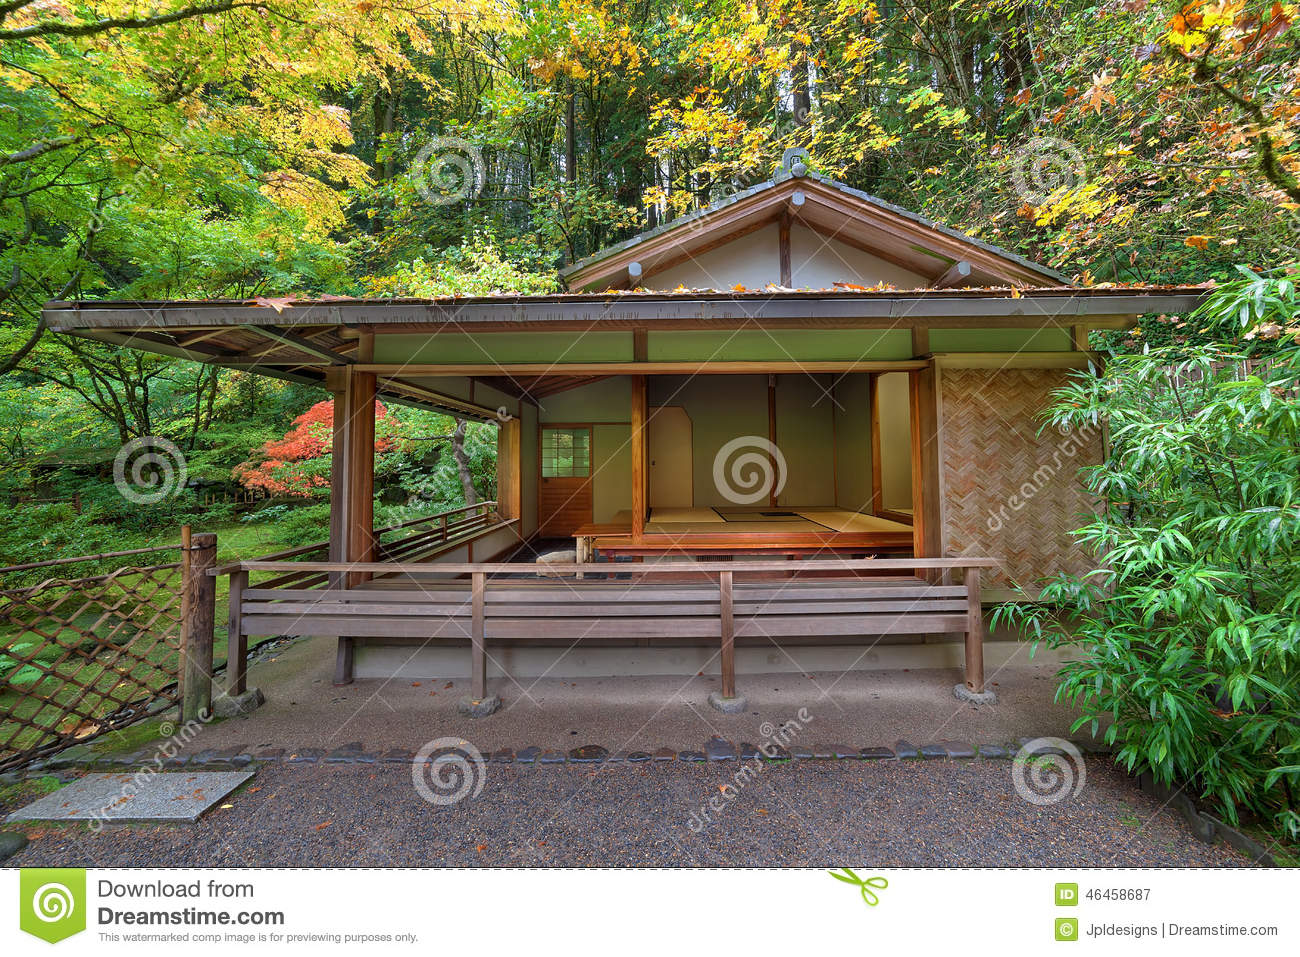 Tea house at japanese garden in fall seaston stock image for Garden in the house